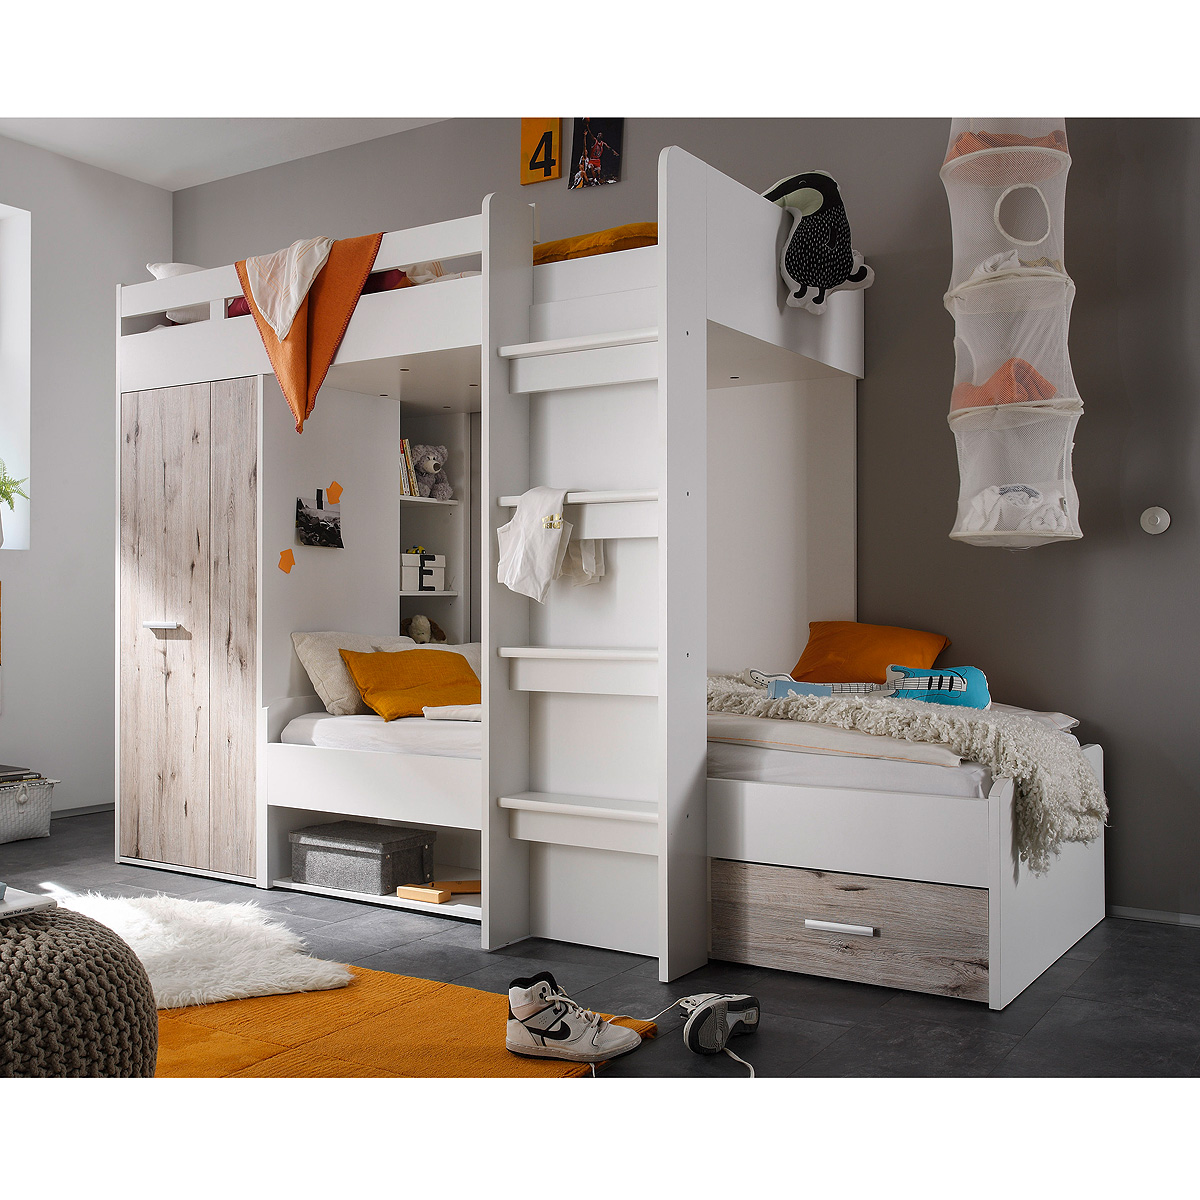 hochbett maxi kinderbett etagenbett kinderzimmerbett bett wei sandeiche 90x200 eur 409 95. Black Bedroom Furniture Sets. Home Design Ideas